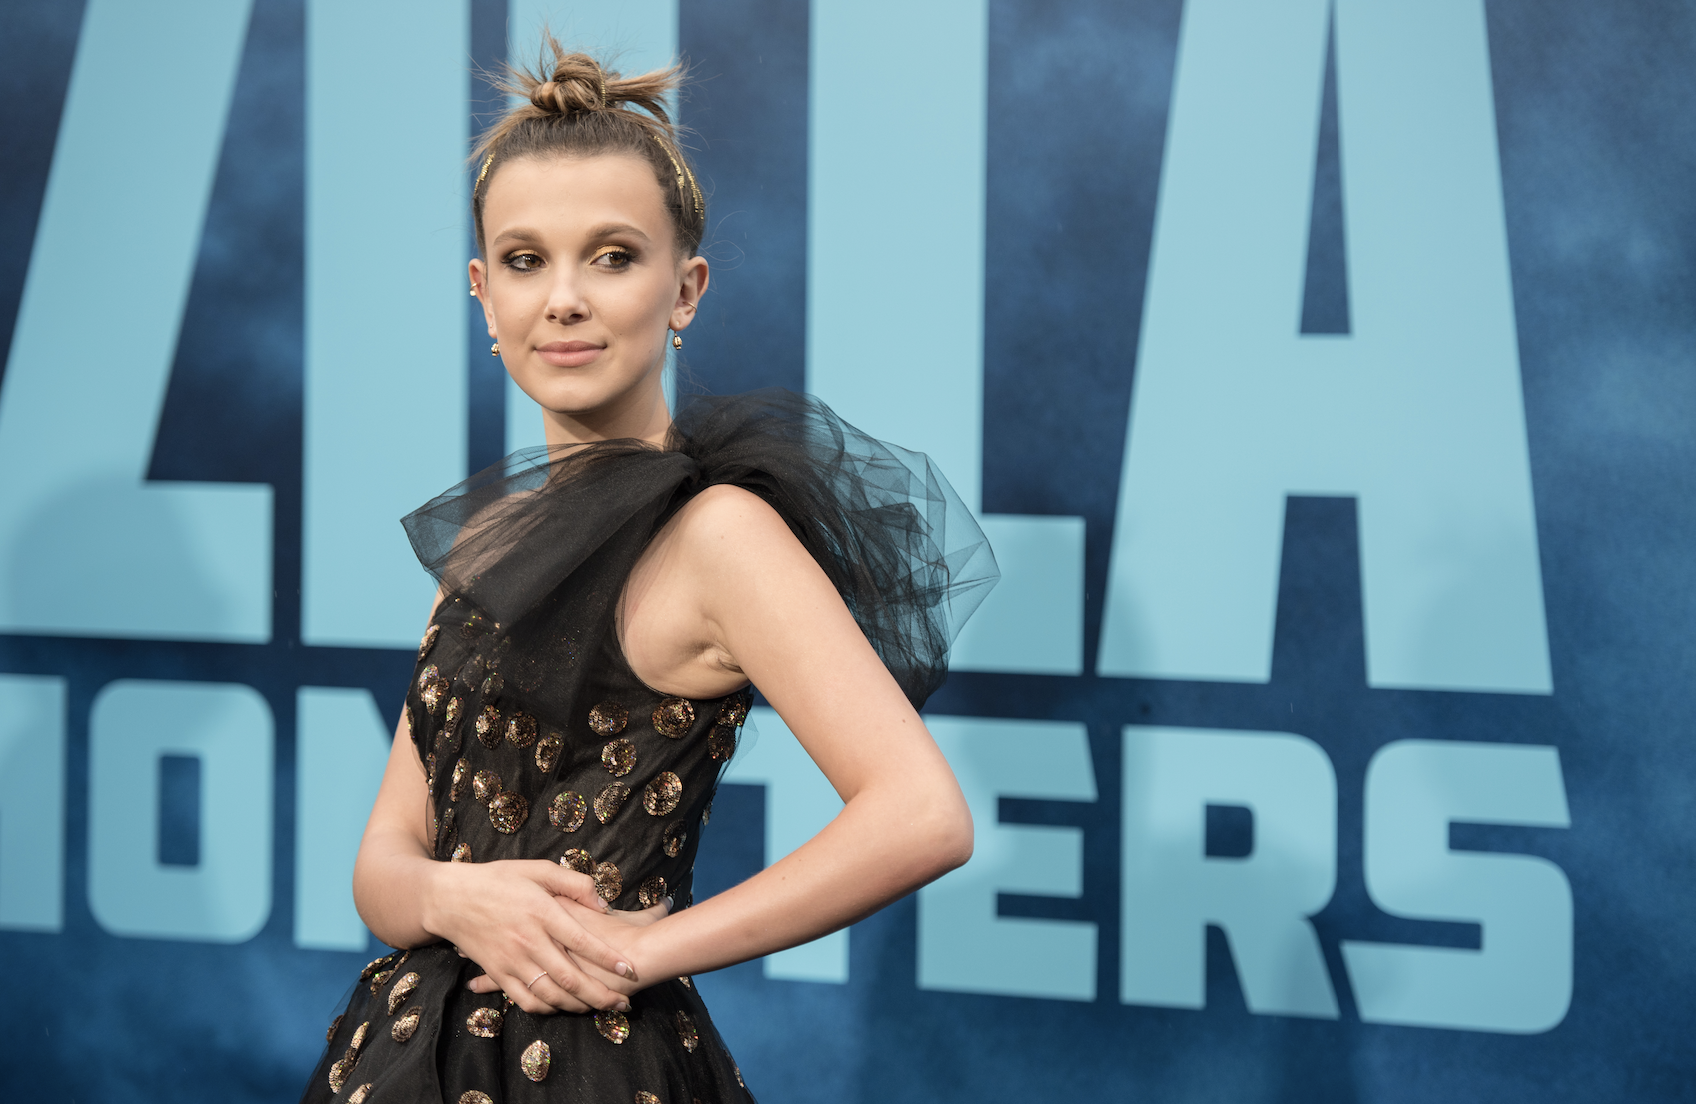 Stranger Things' Millie Bobby Brown joining forces with her sister for new Netflix movie